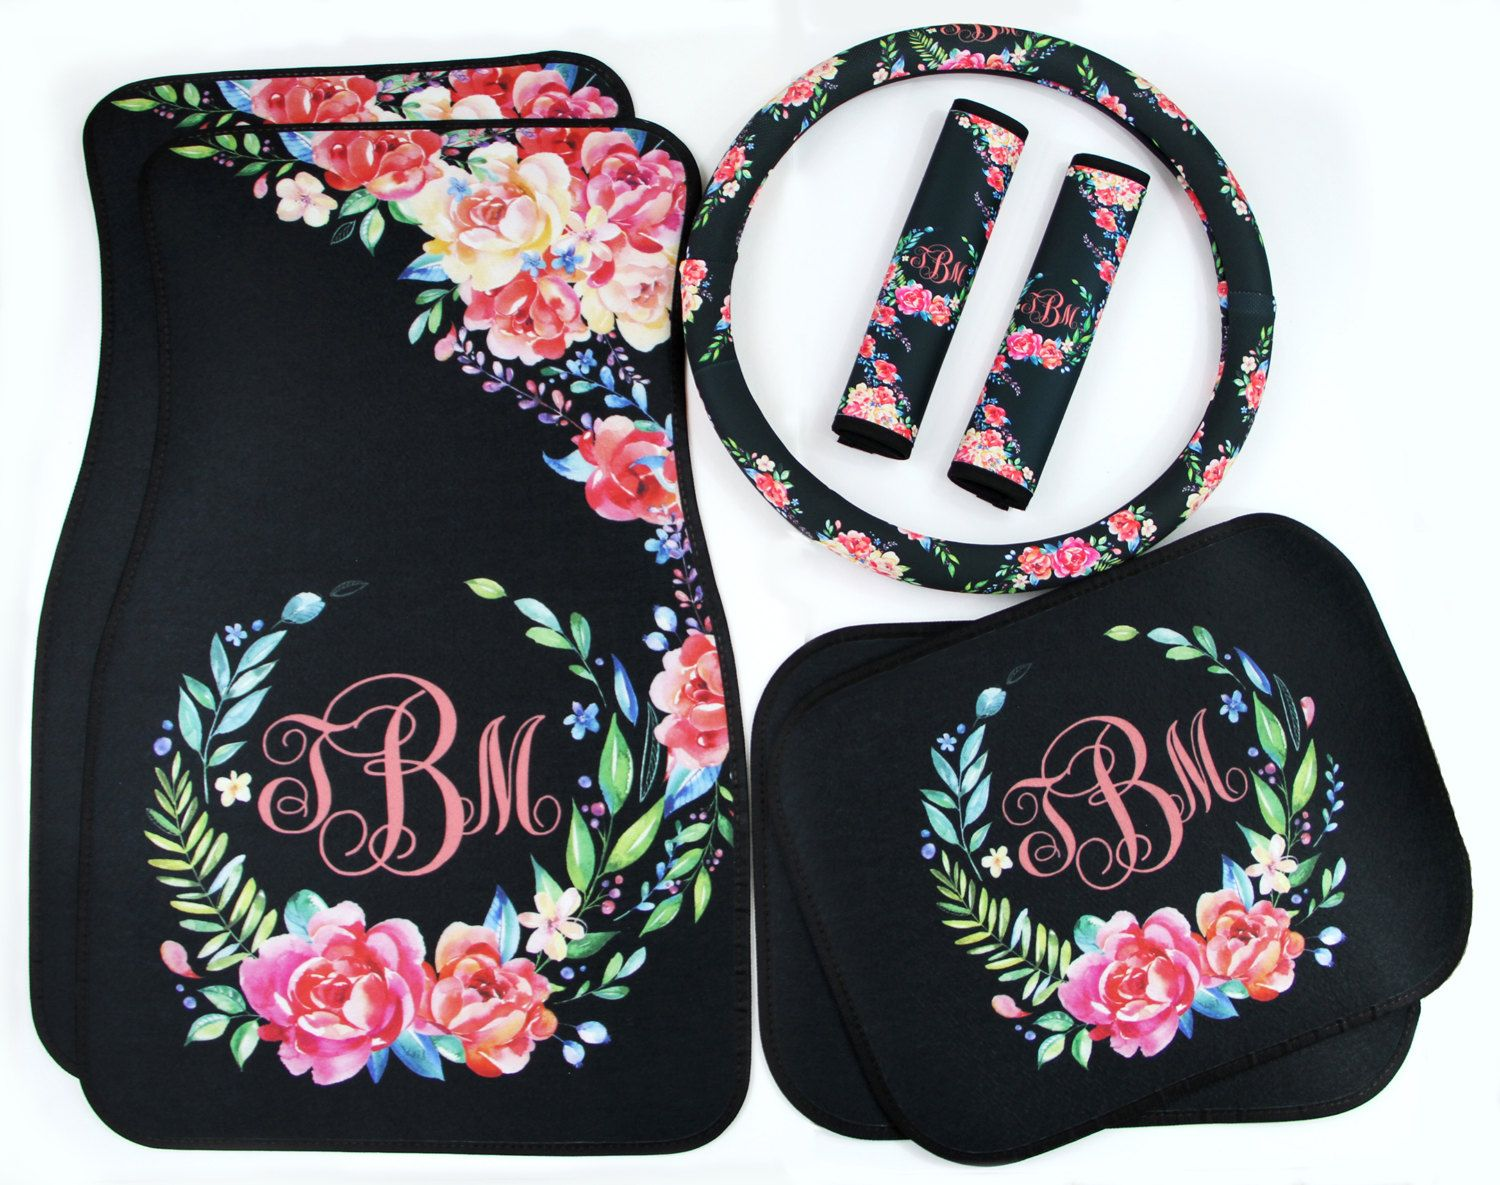 Floor mats dream cars - Classy Black Floral Car Accessories Mix Match Car Floor Mats Steering Wheel Cover Seat Belt Covers Personalized Custom Monogram Carmats